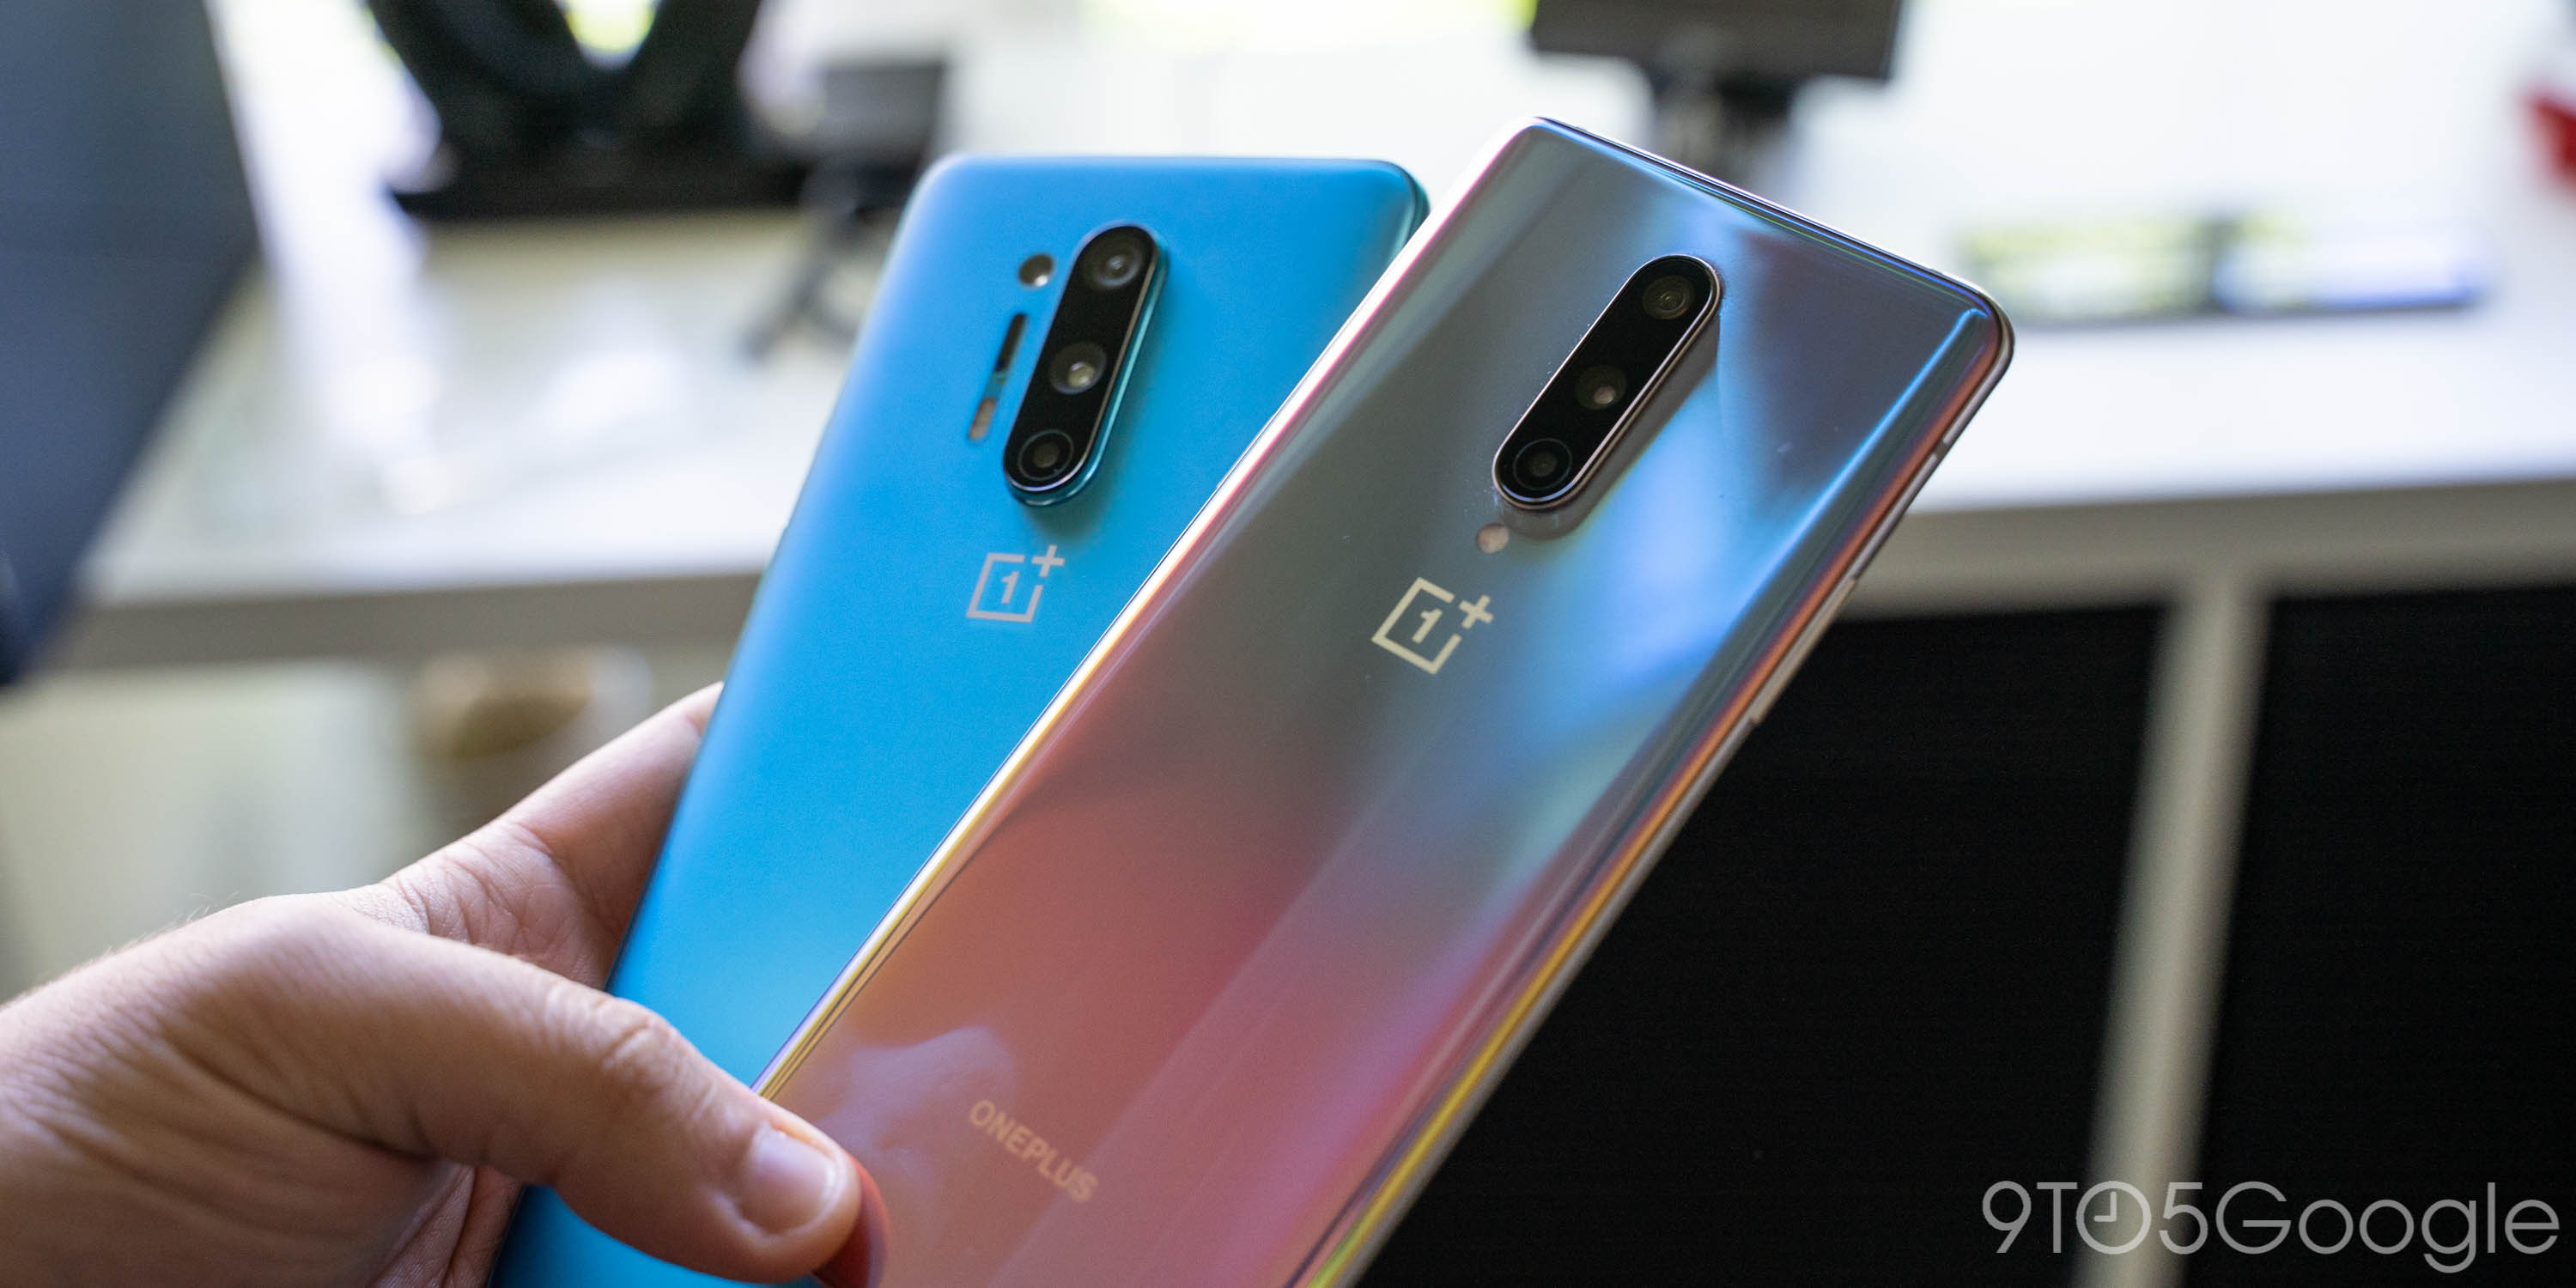 Where To Buy Oneplus 8 T Mobile Verizon And Amazon 9to5google